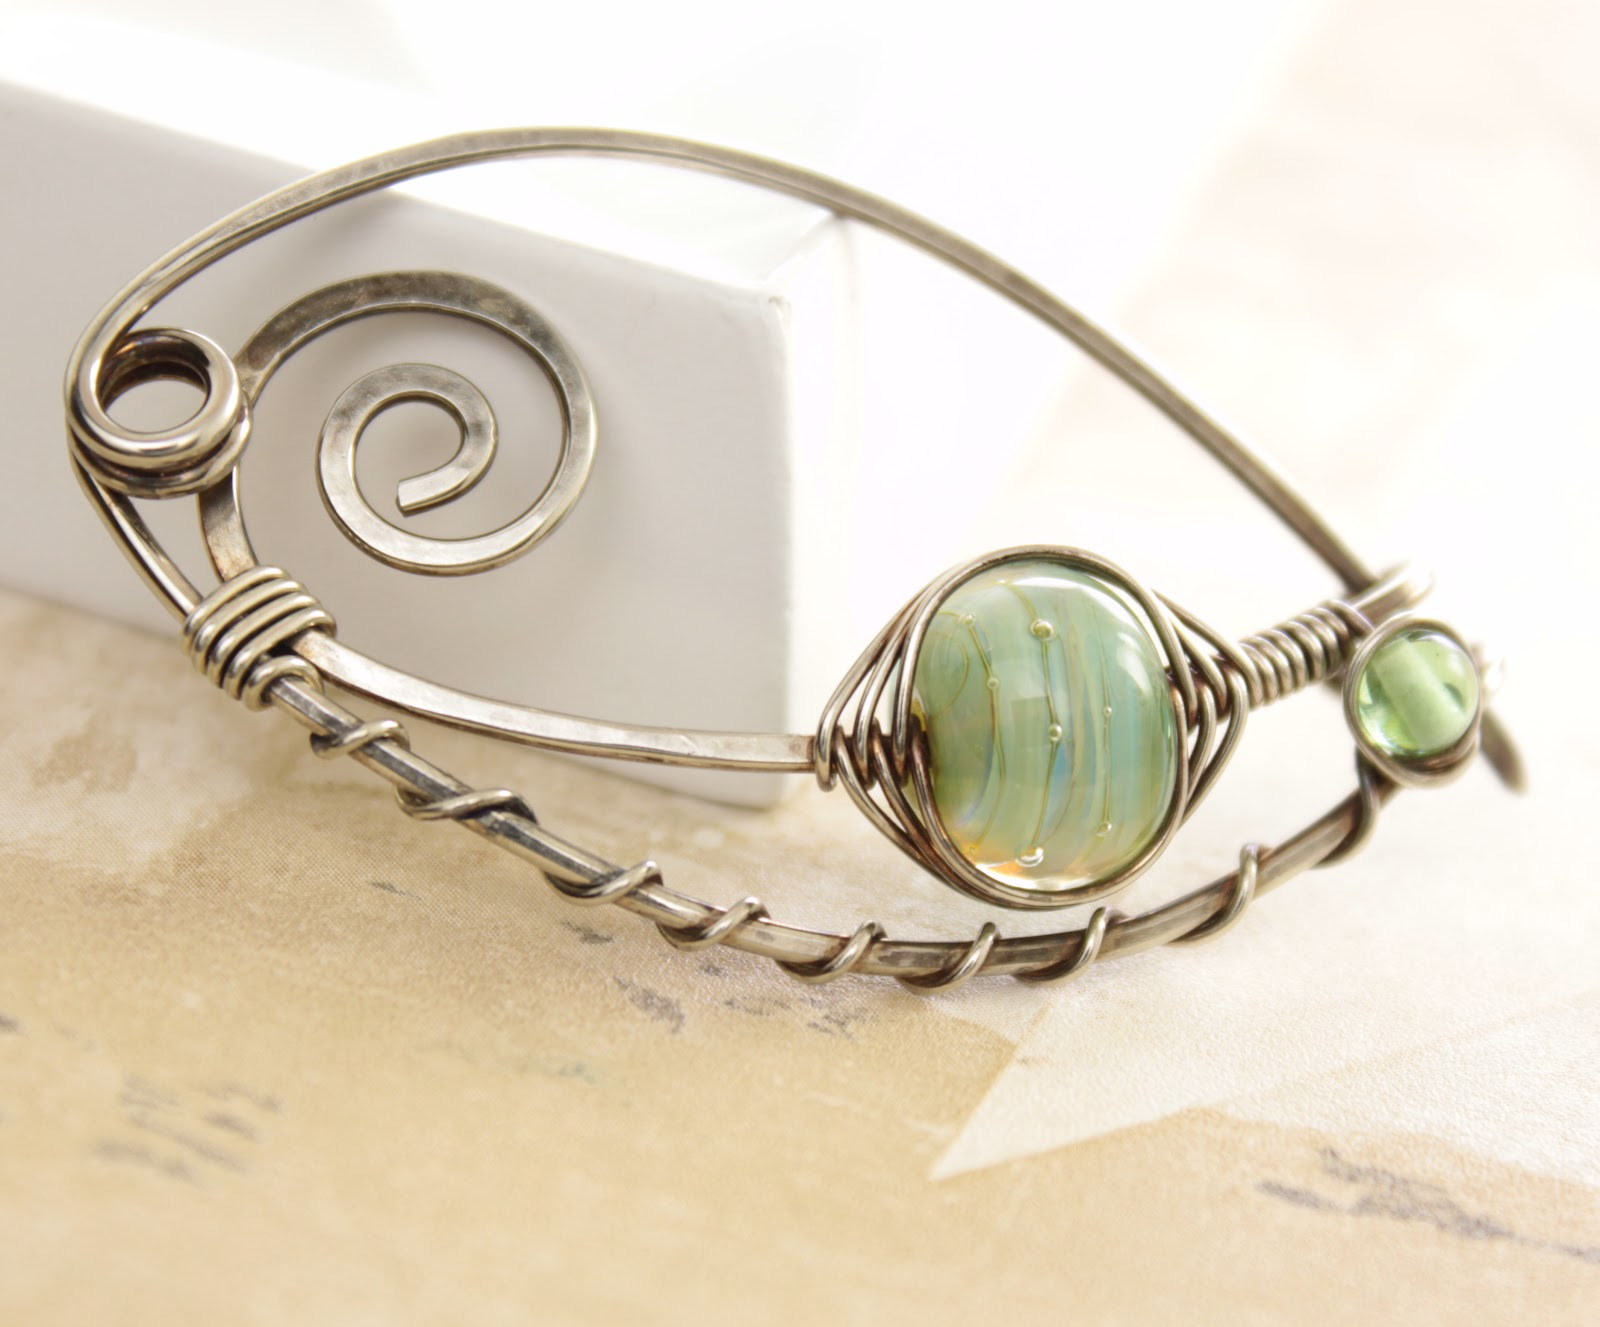 Shawl pins, jewelry and knitting accessories